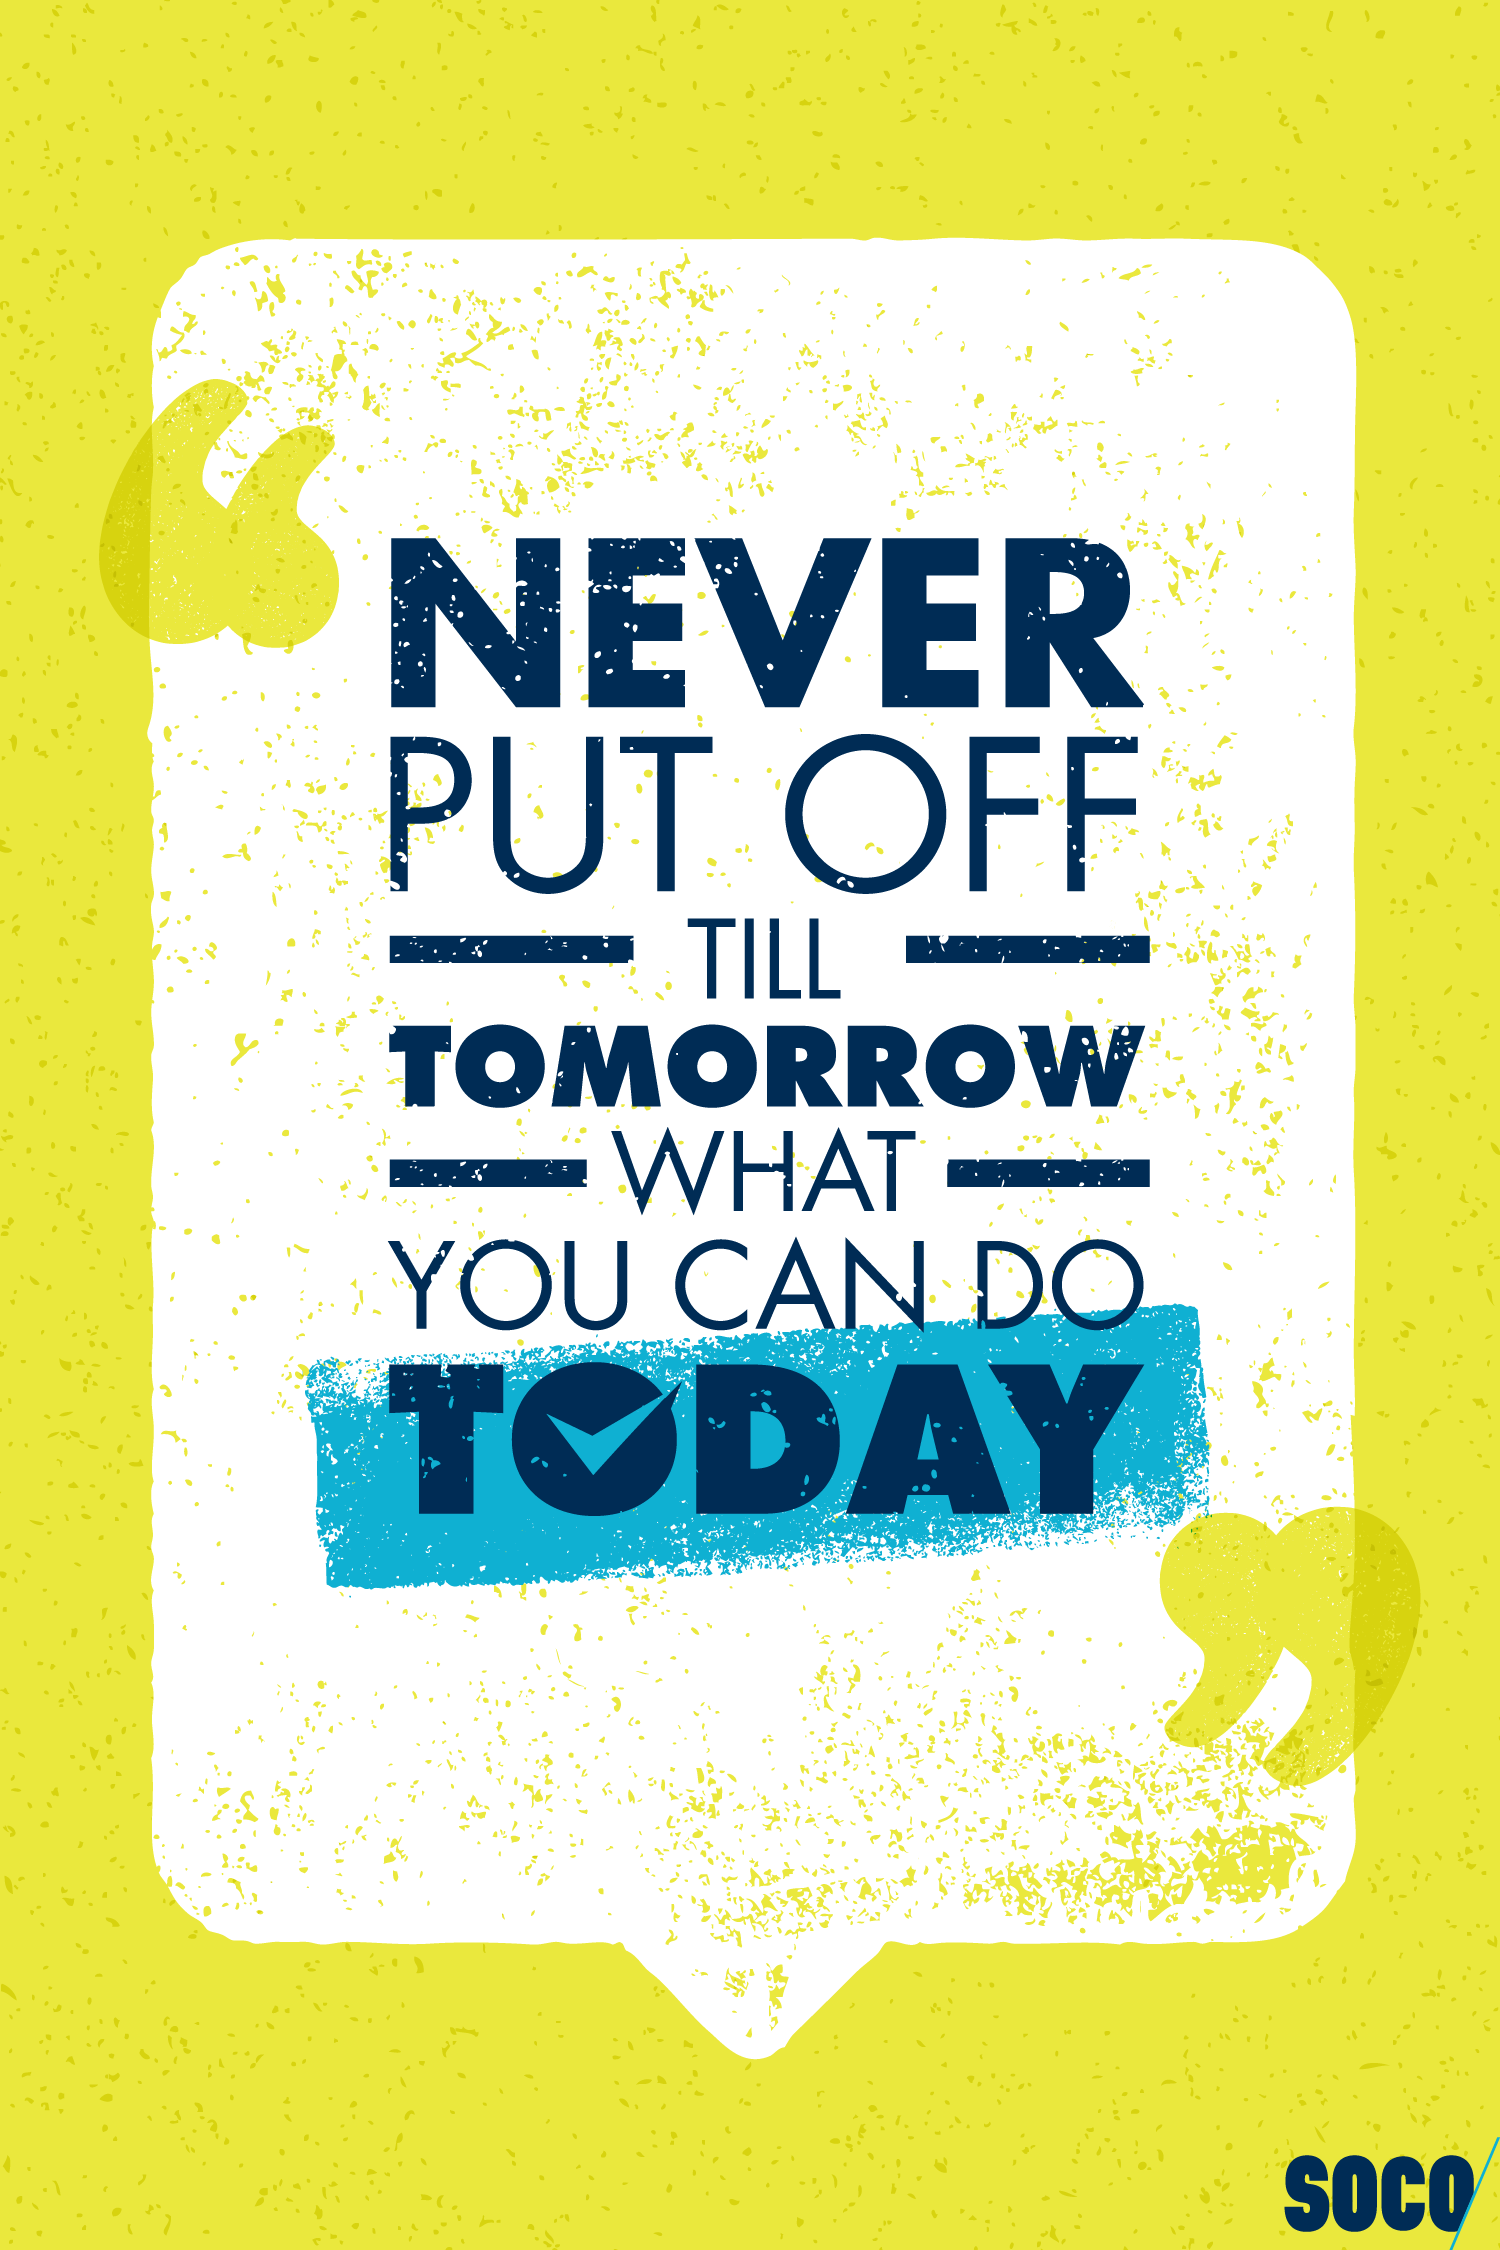 Sales Quote Of The Day Brilliant Motivational Sales Quote Images For Sales Professionals  Quotes .